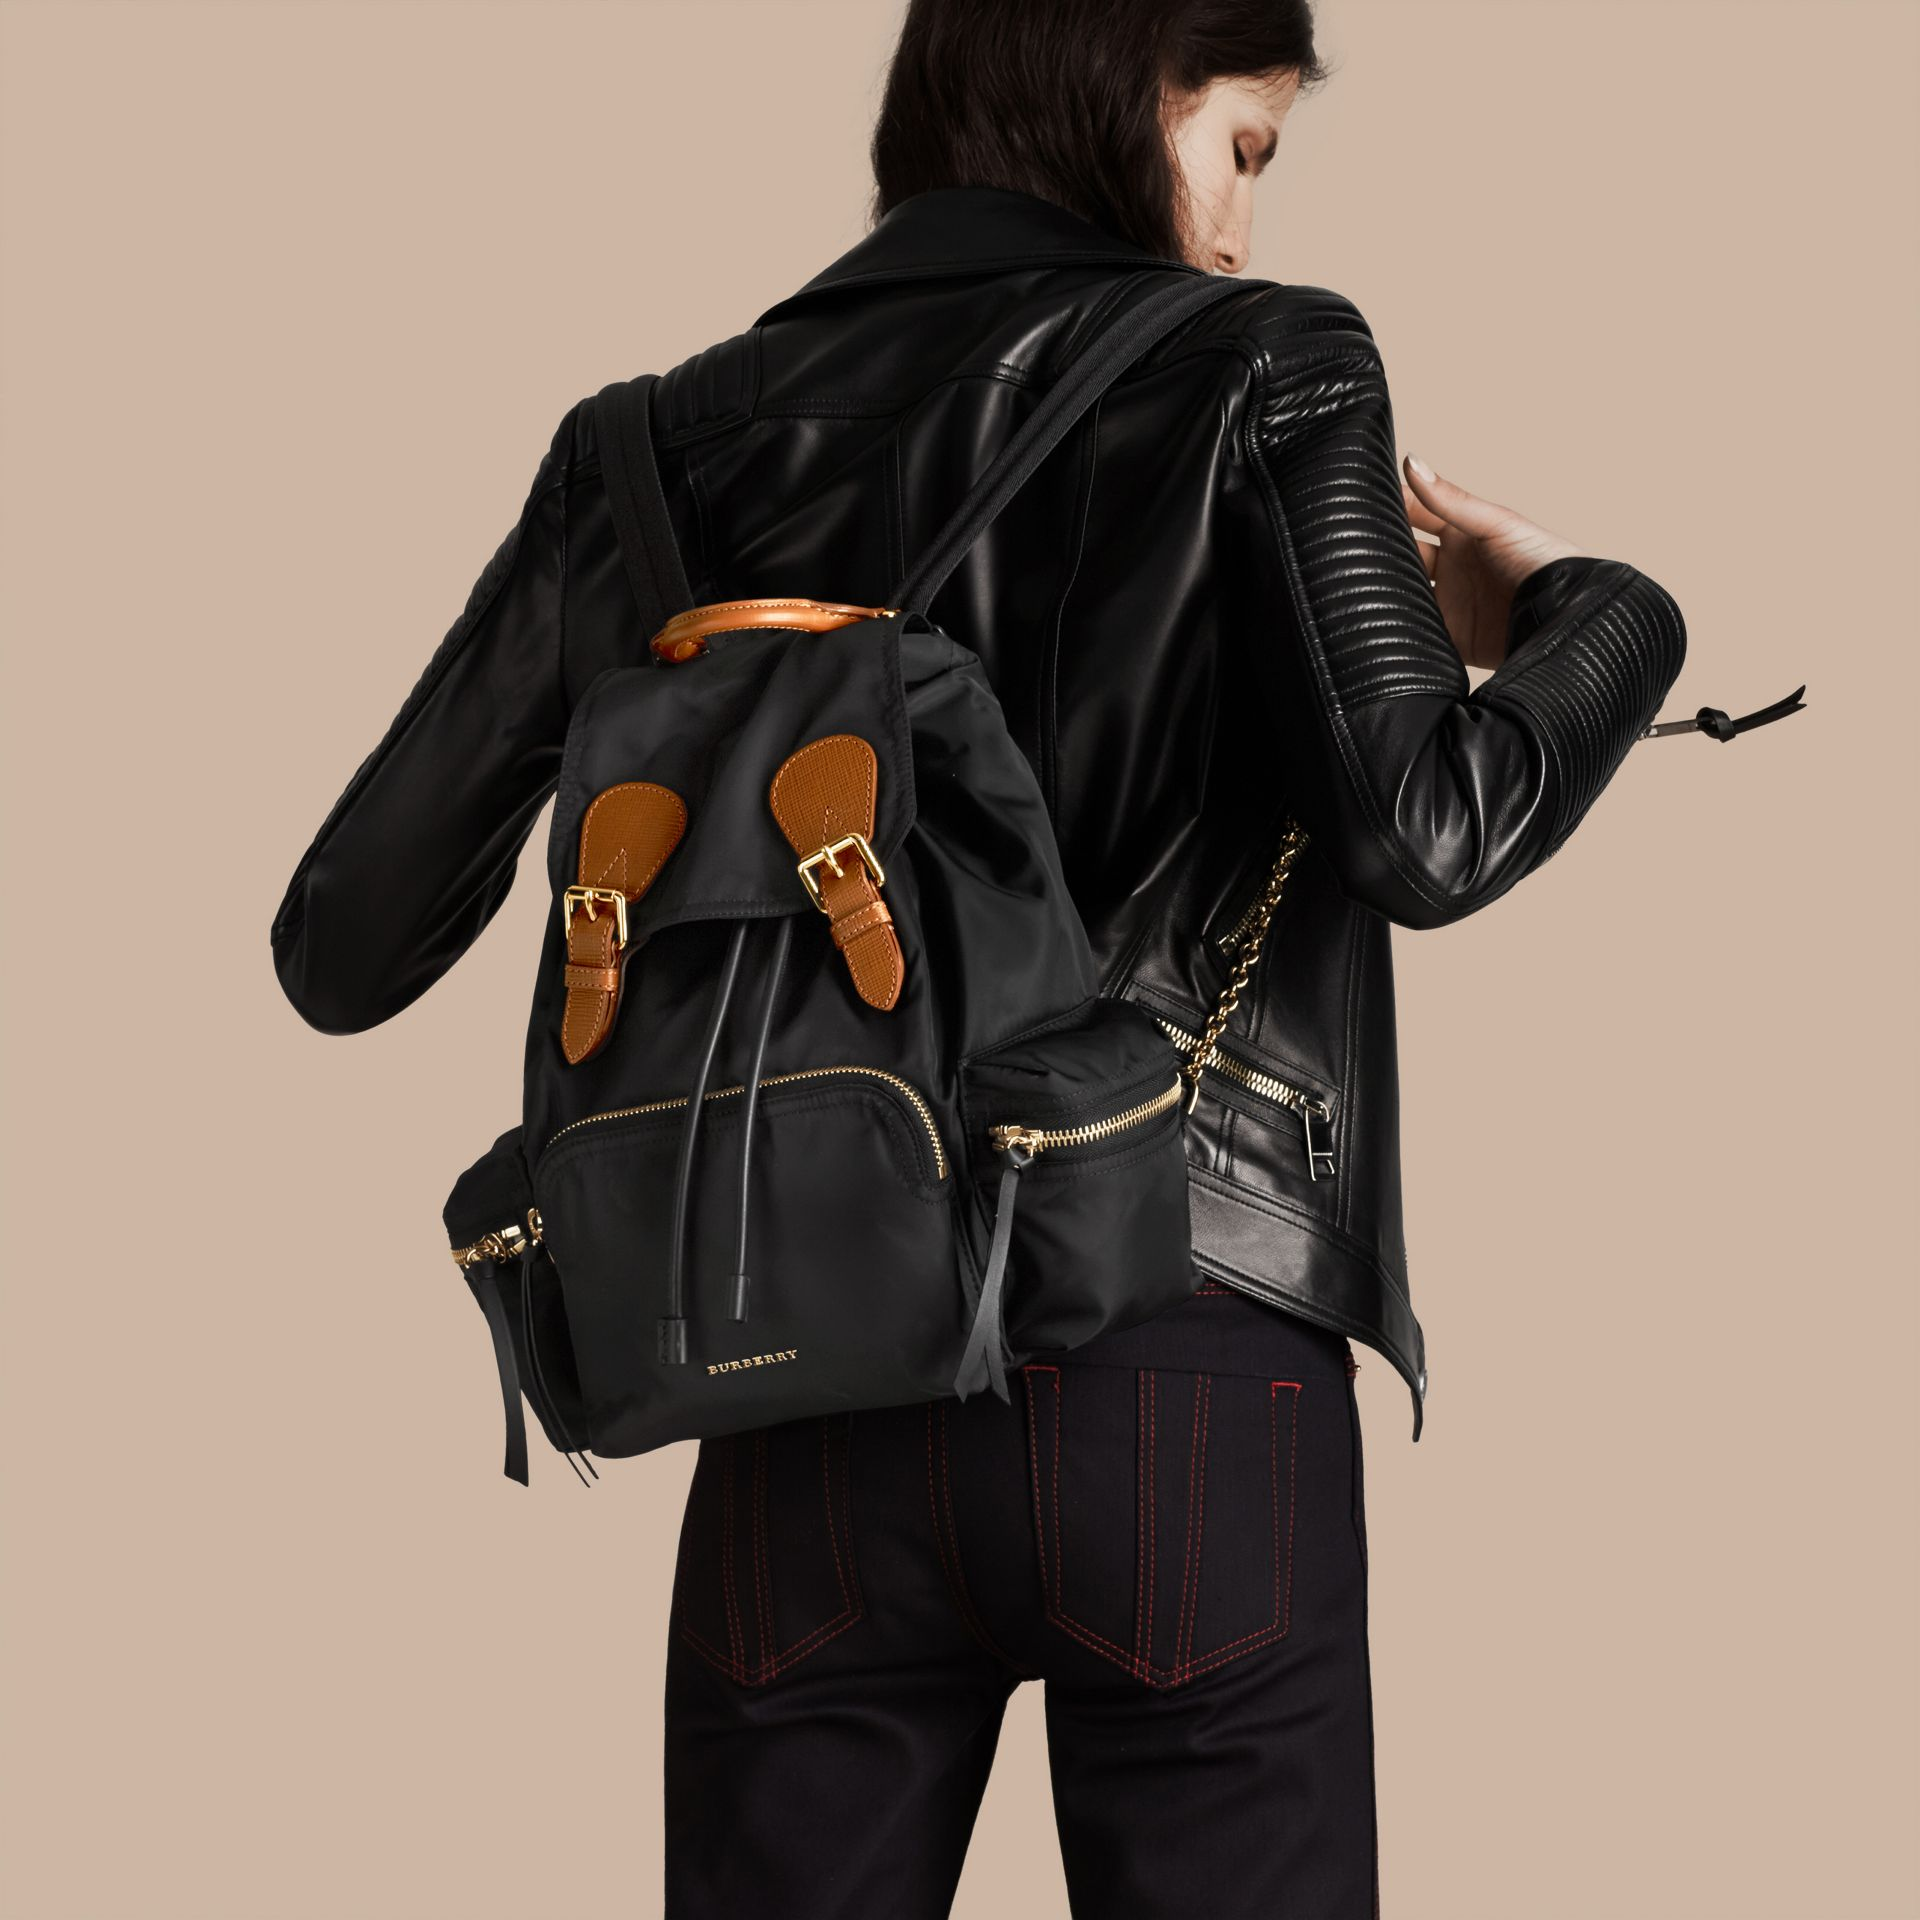 Sac The Rucksack moyen en nylon technique et cuir (Noir) - Femme | Burberry - photo de la galerie 3